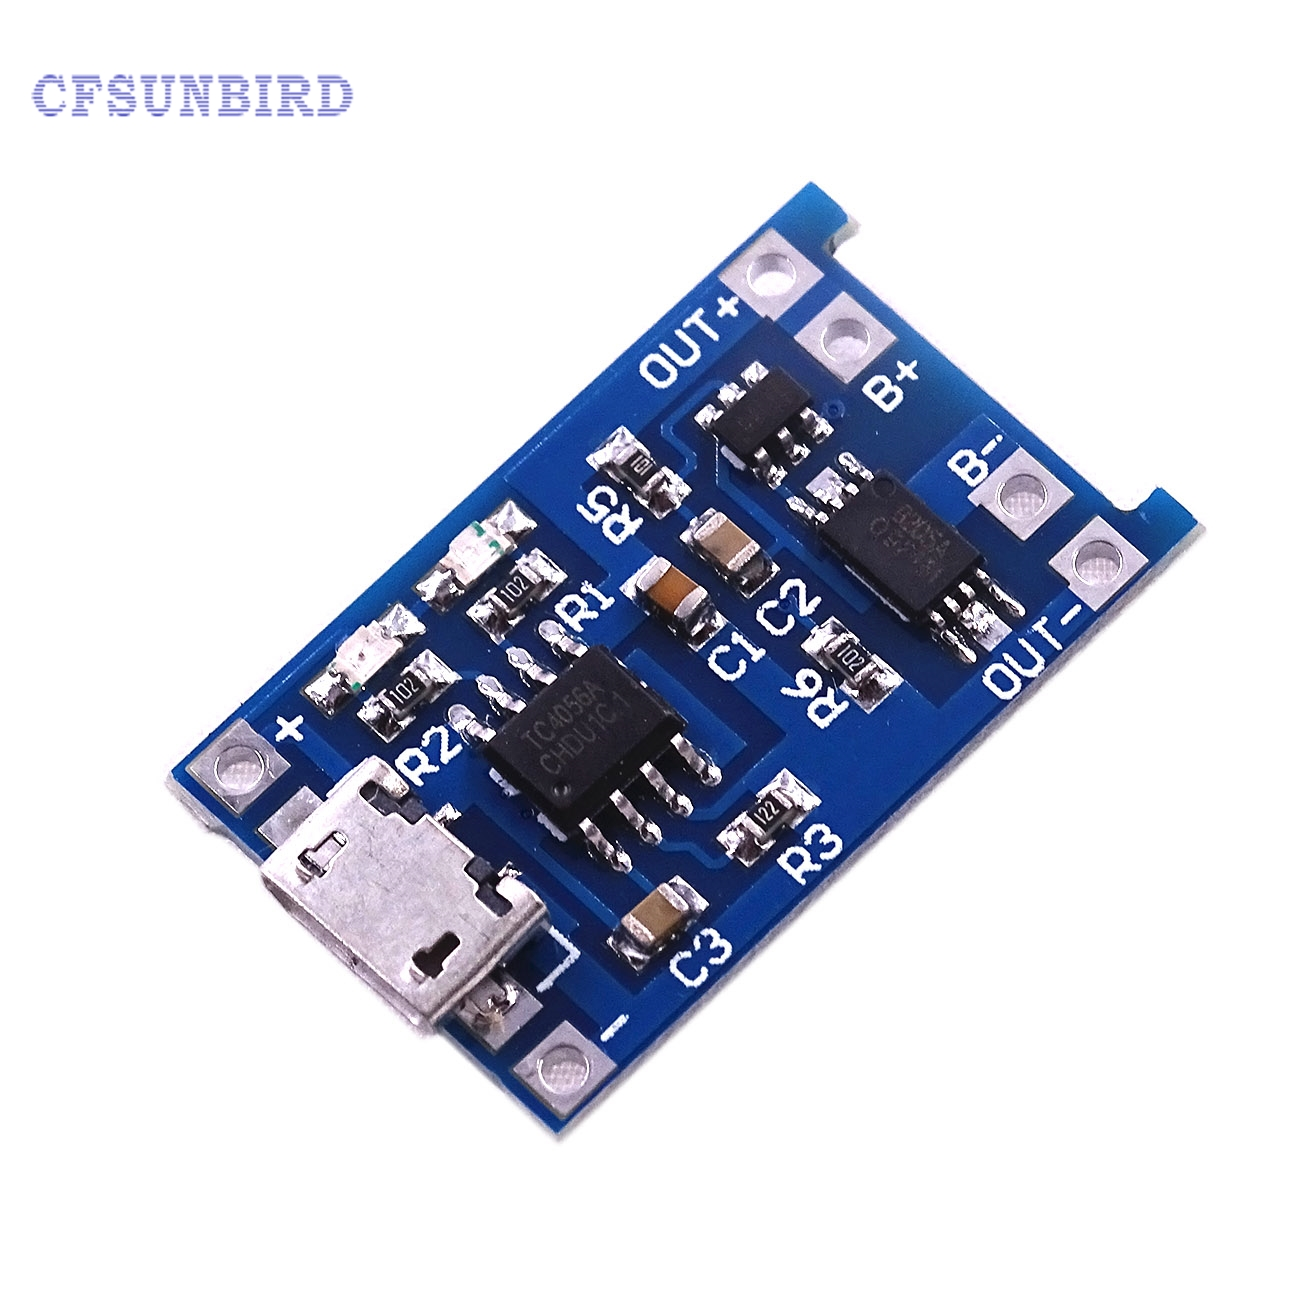 10pcs  Micro USB 5V 1A 18650 TP4056 Lithium Battery Charger Module Charging Board With Protection Dual Functions 10pcs lot 2s li ion lithium battery 18650 charger protection module board 3a 7 4v 8 4v free shipping